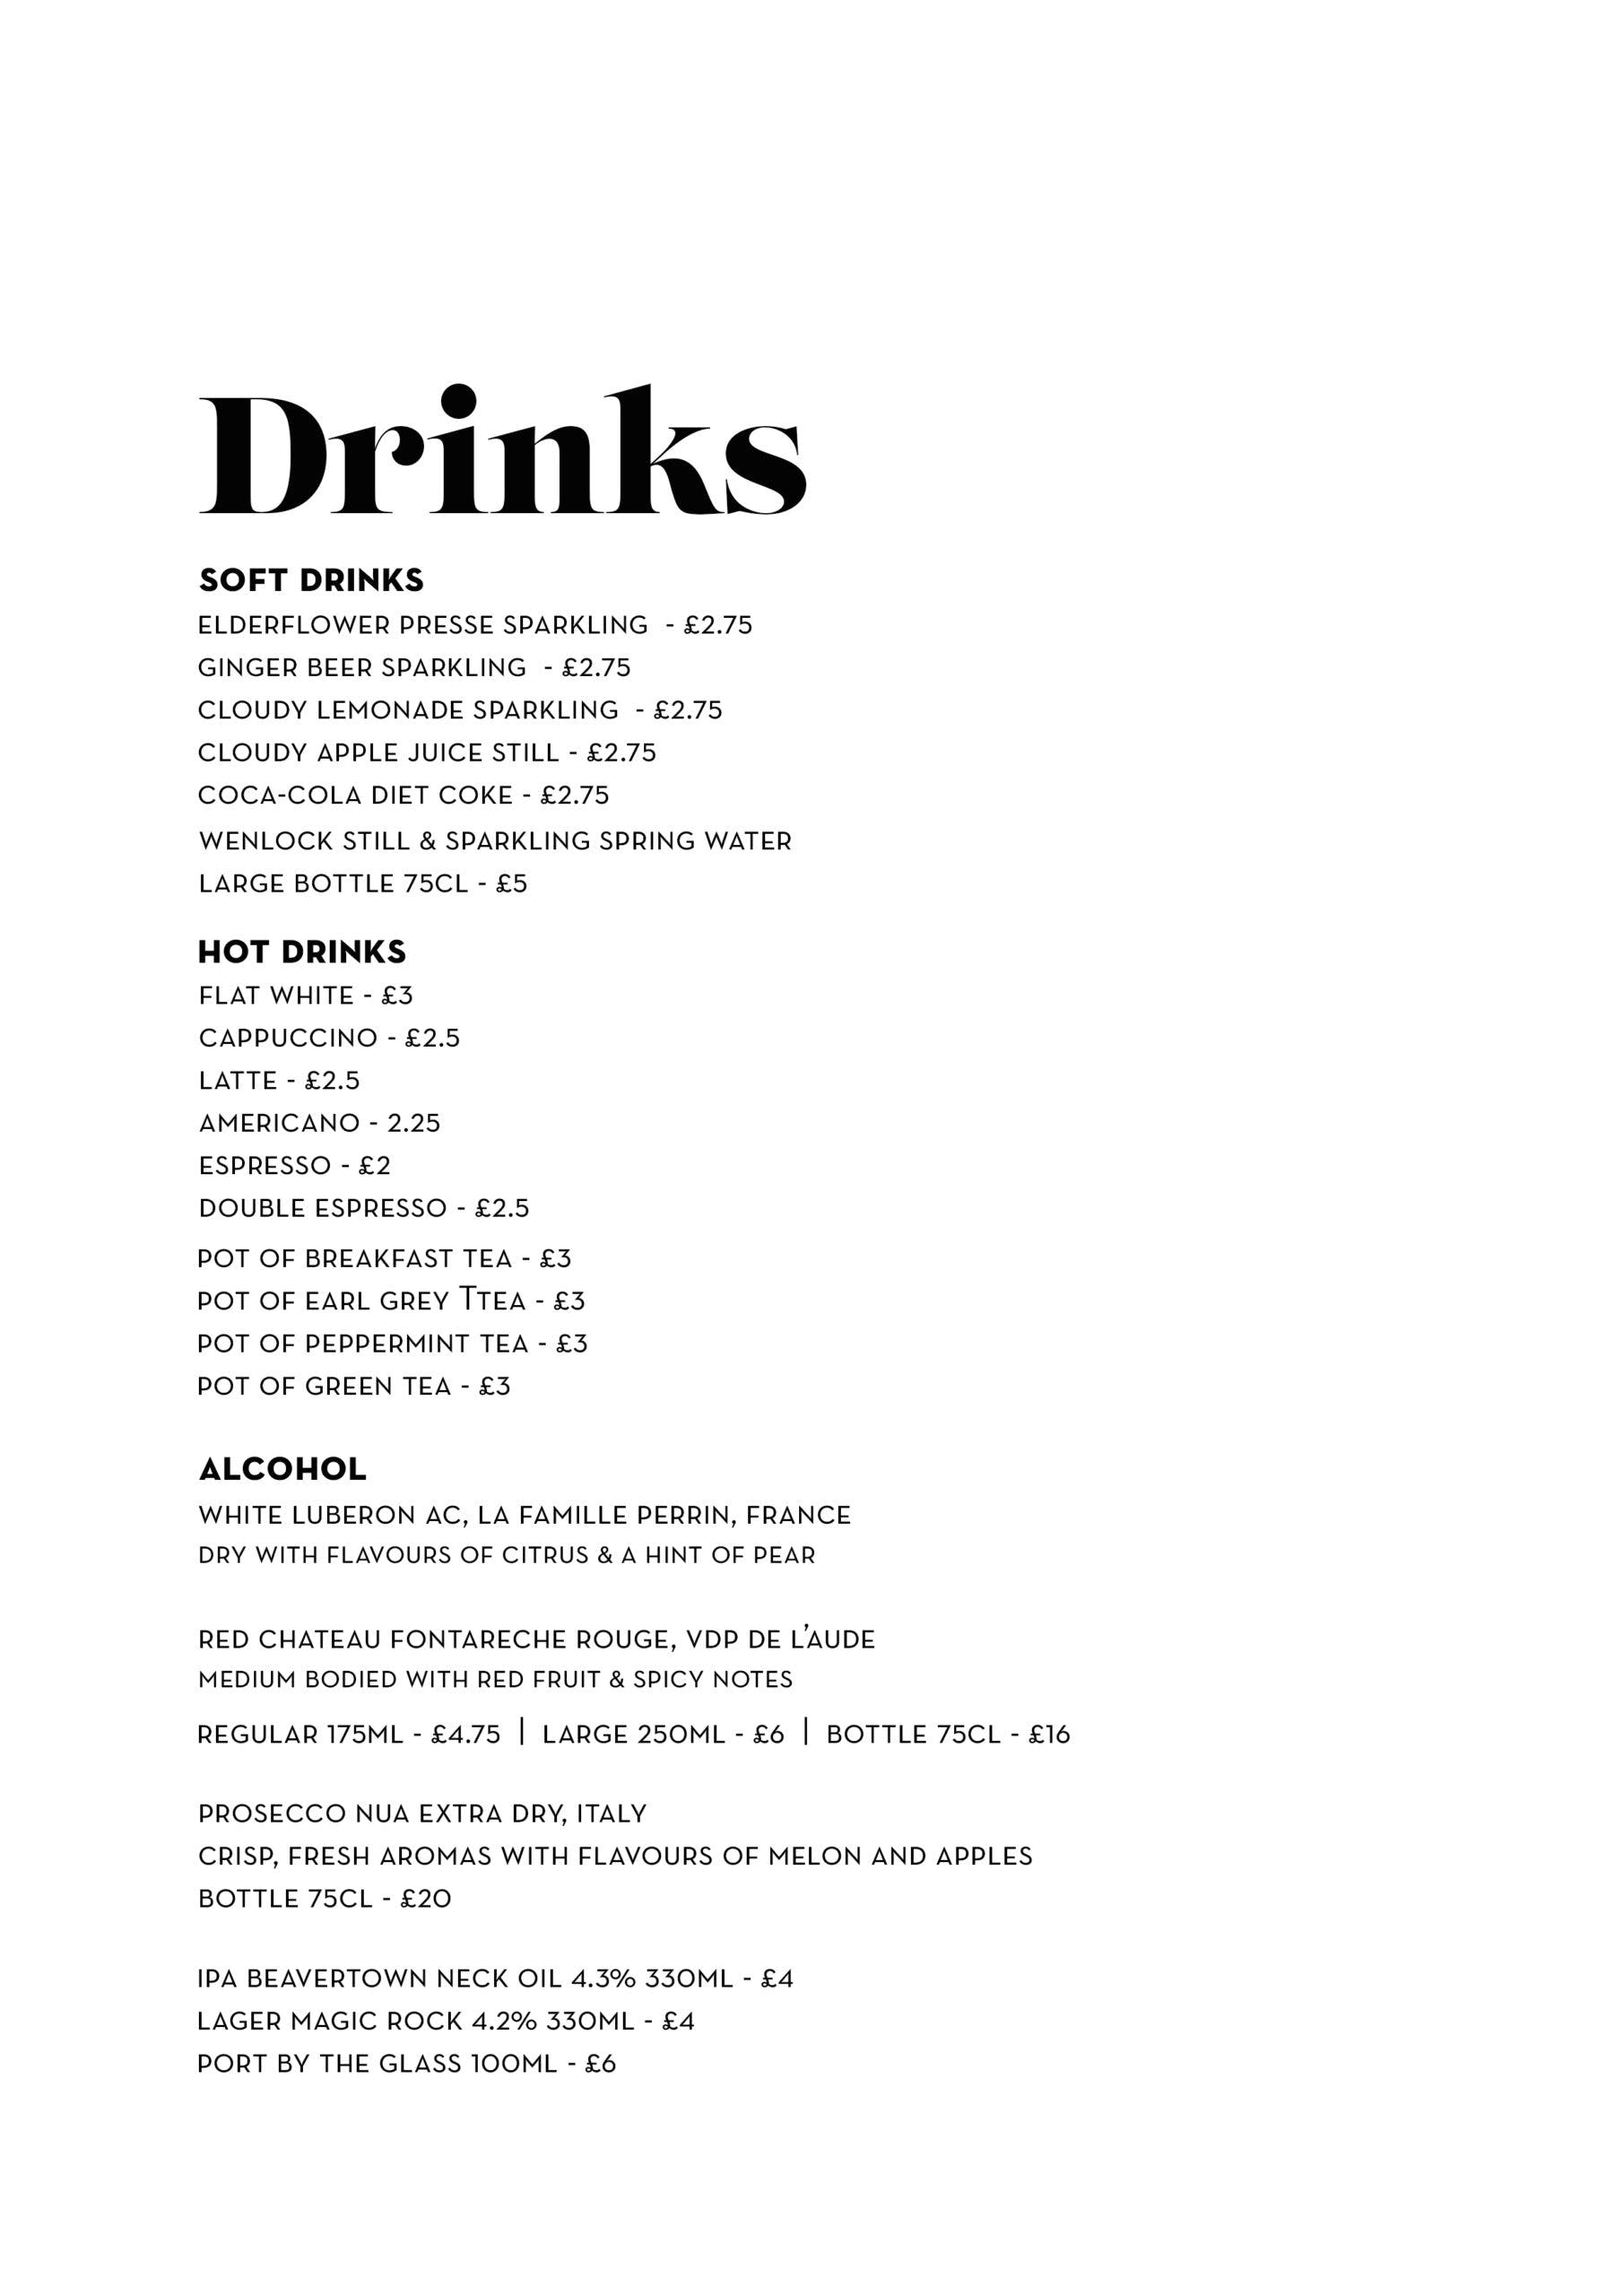 Drinks Menu - The Cheese Society Cafe